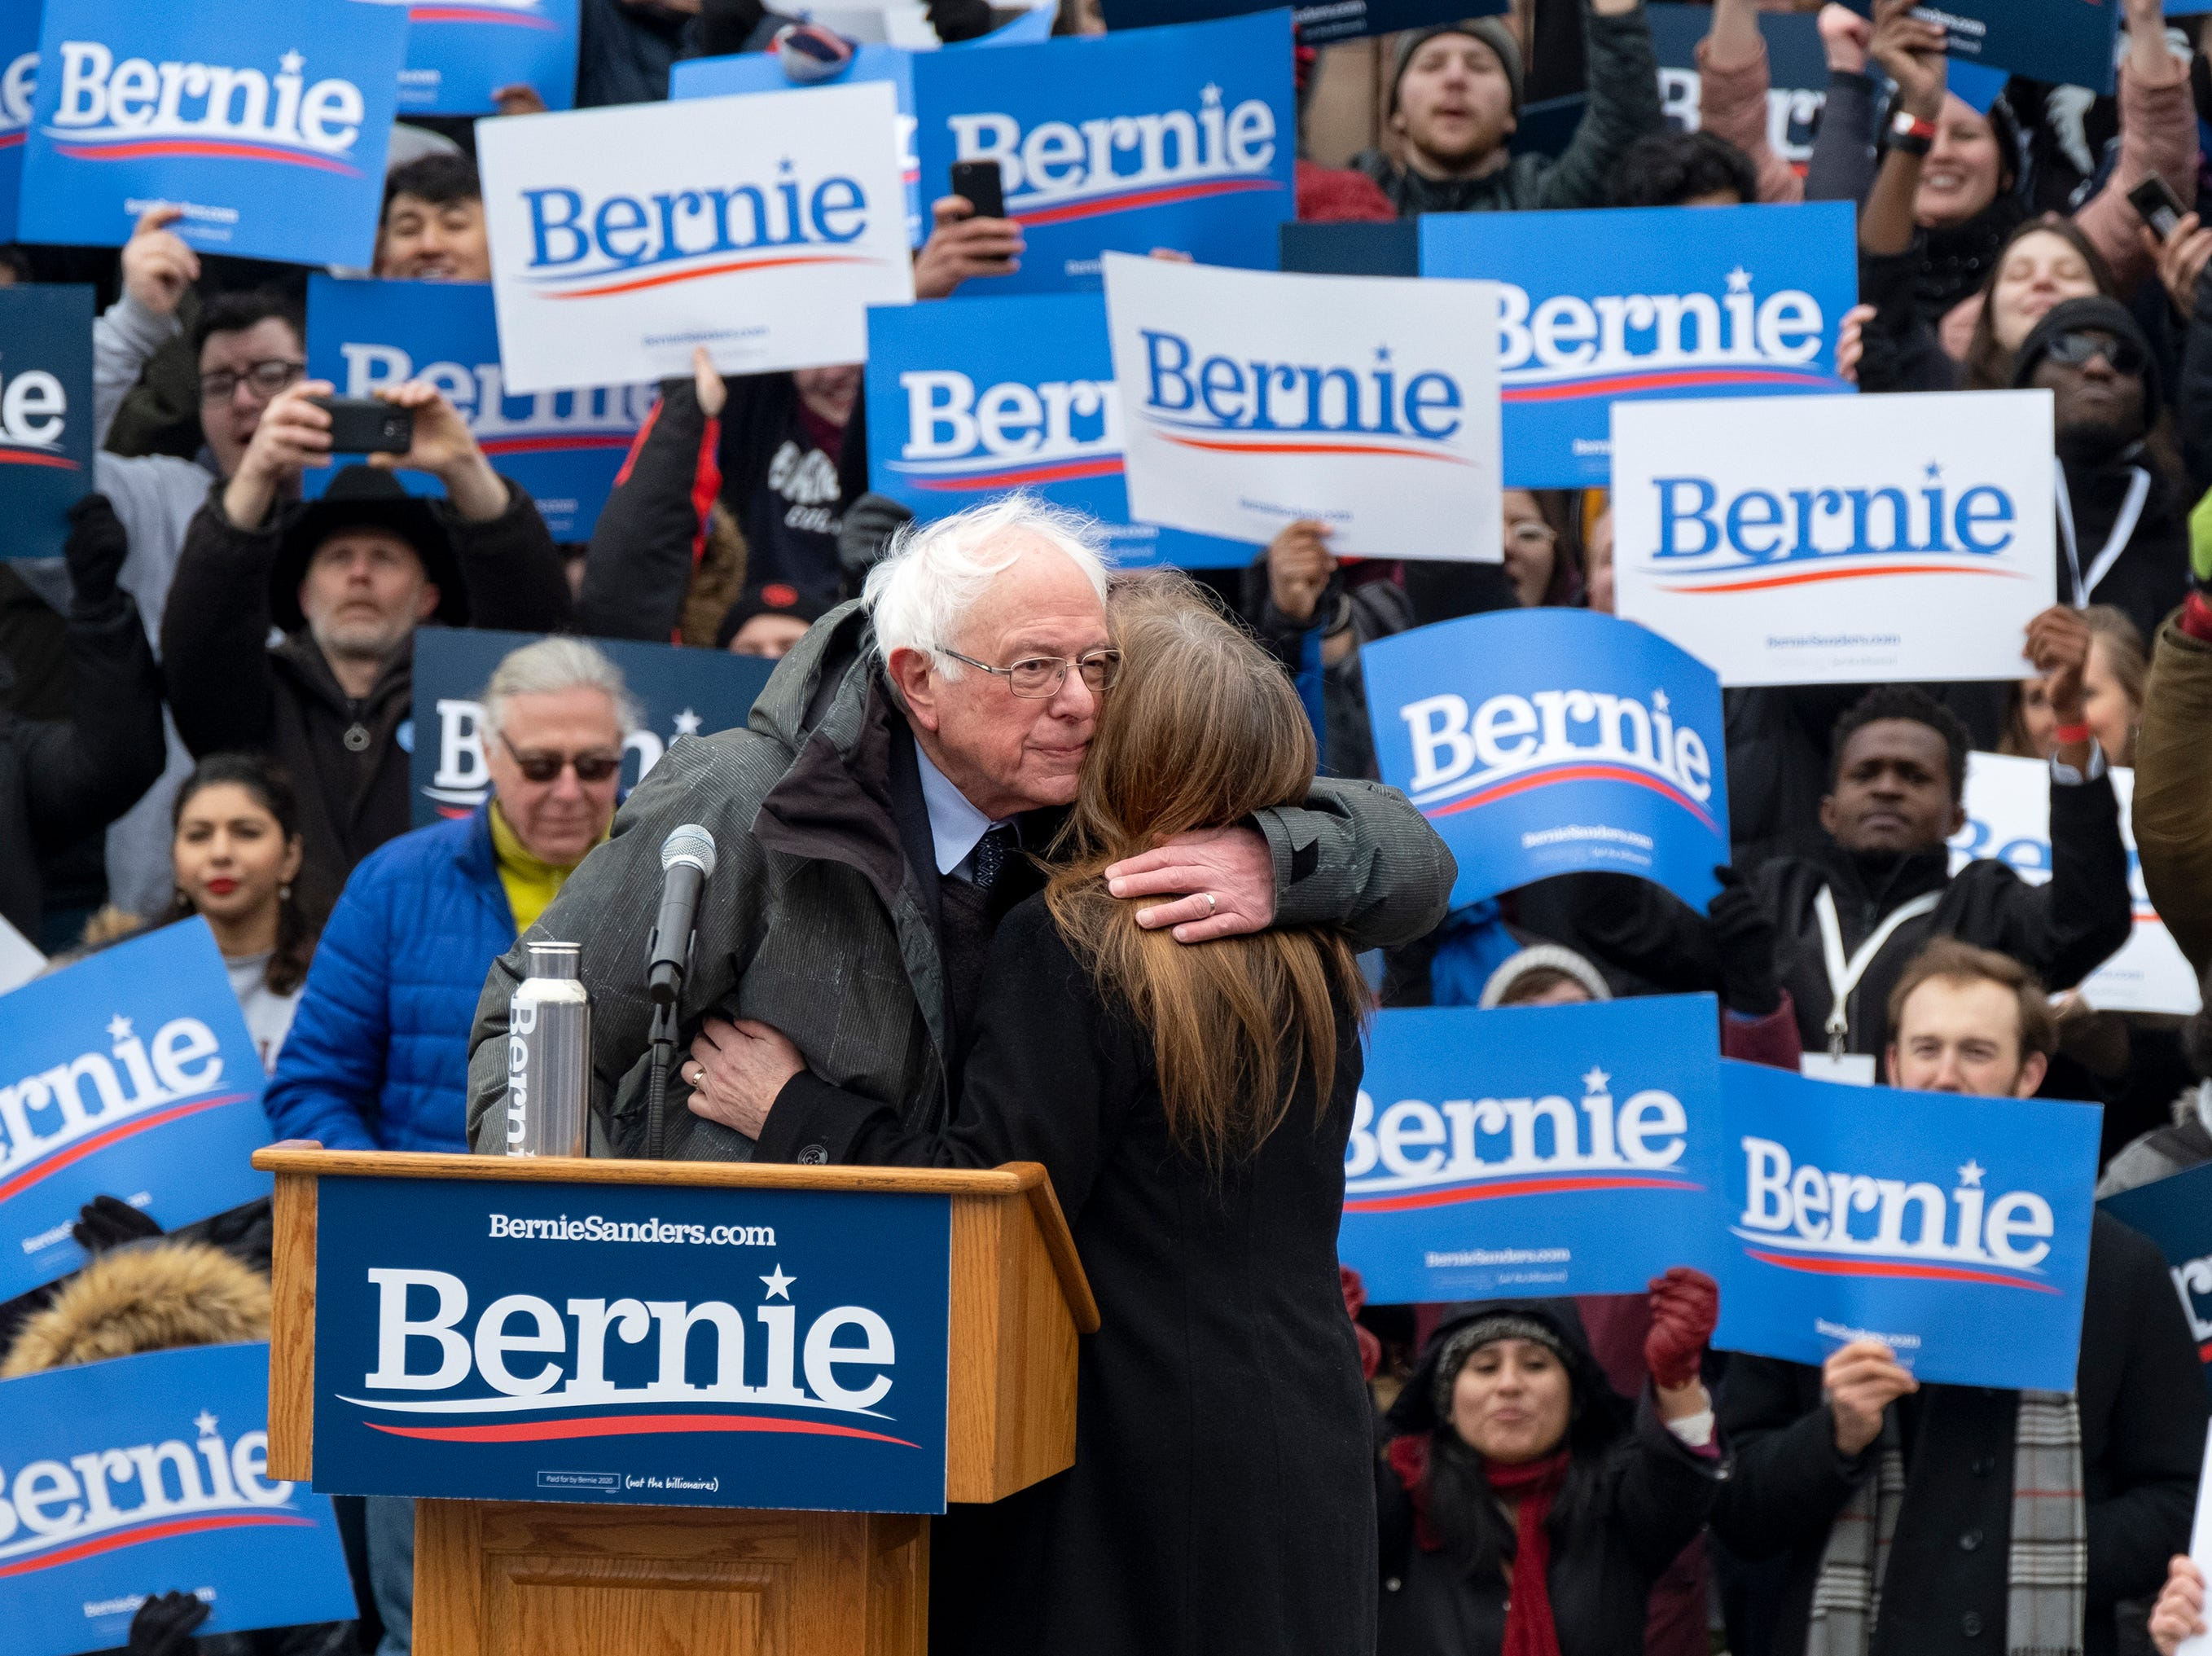 Sen. Bernie Sanders, I-Vt., hugs his wife Jane after he finished speaking  Saturday, March 2, 2019, in the Brooklyn borough of New York.  Sanders returned to Brooklyn, his birthplace, for the first rally of his second presidential campaign and sought to tie his working-class background to his populist views that are helping reshape the Democratic Party.